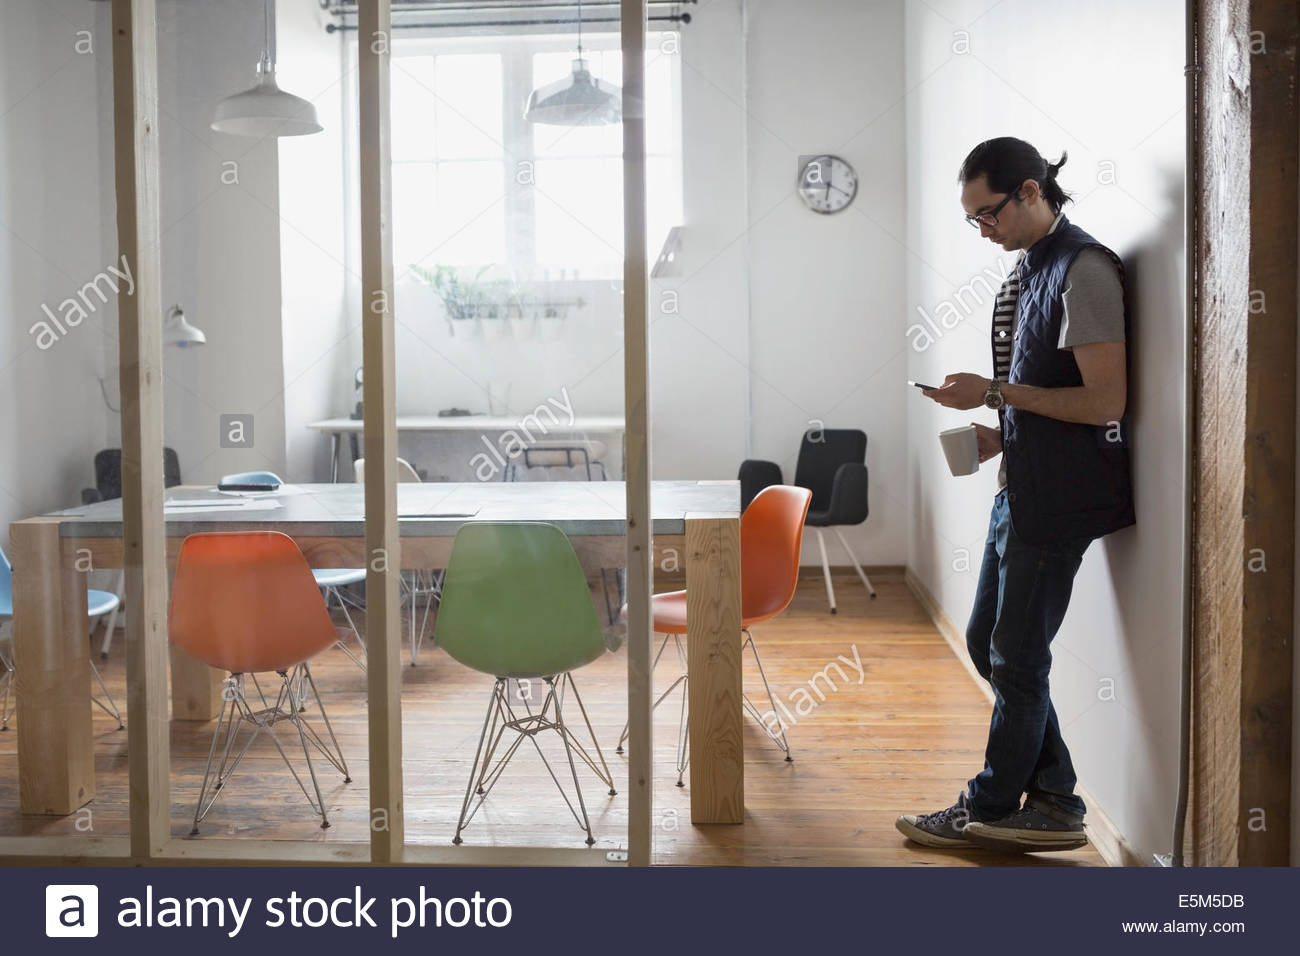 Businessman using cell phone in conference room Photo Stock